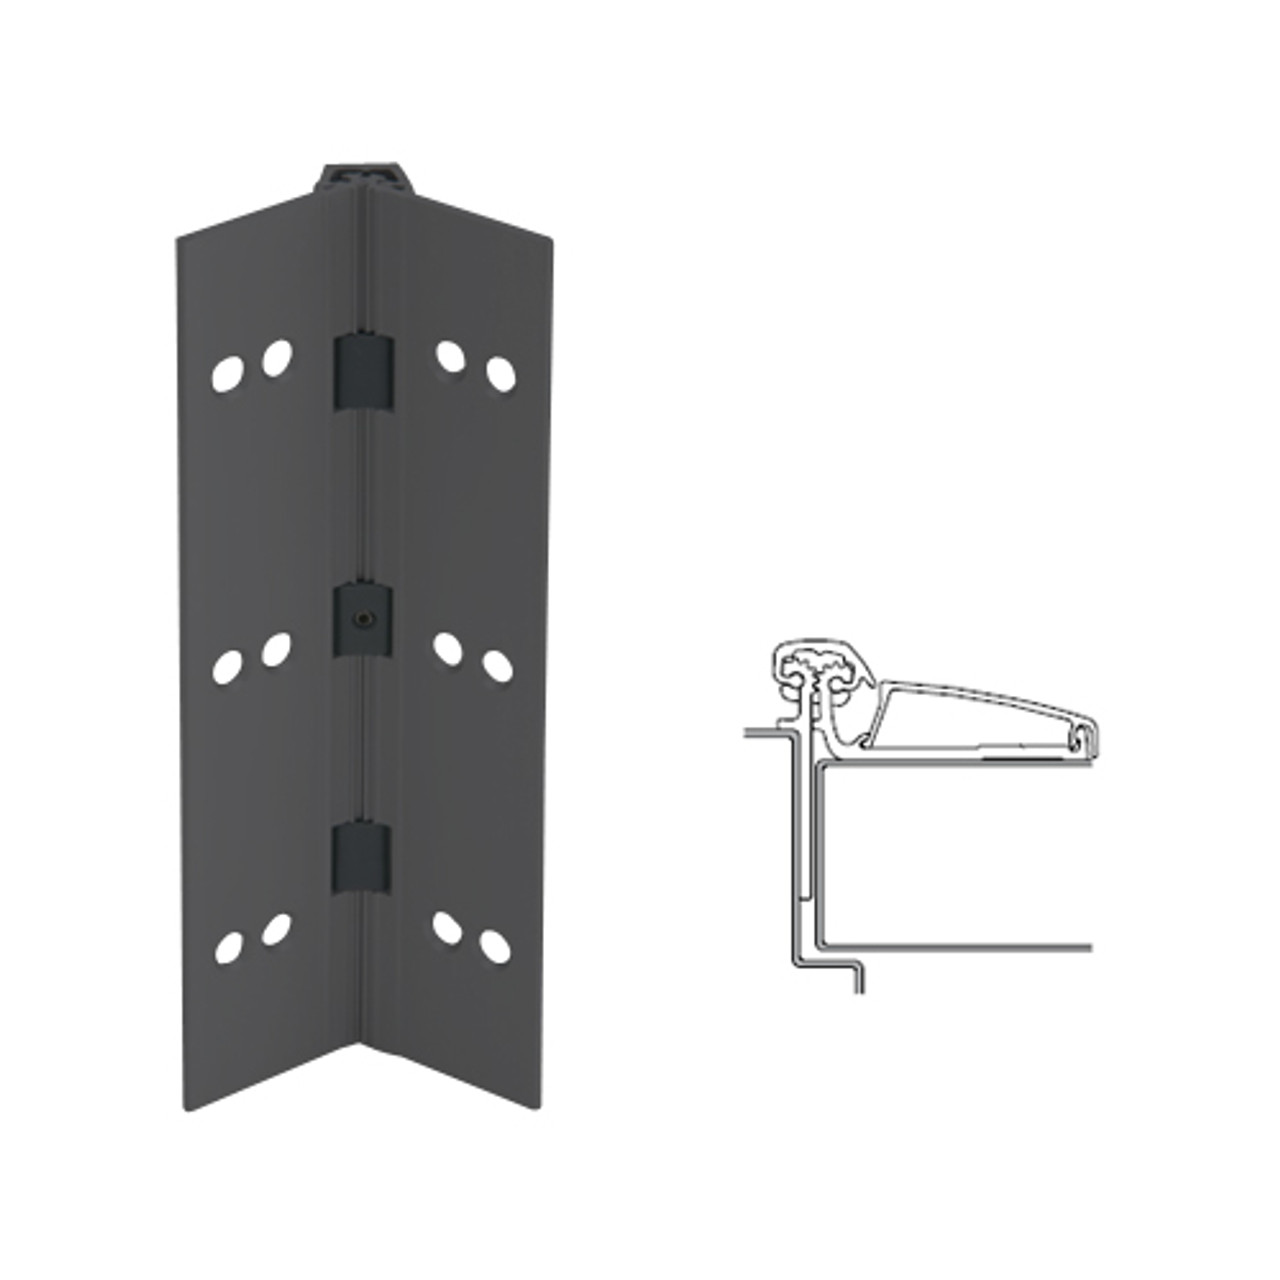 045XY-315AN-120-SECWDHM IVES Adjustable Half Surface Continuous Geared Hinges with Security Screws - Hex Pin Drive in Anodized Black